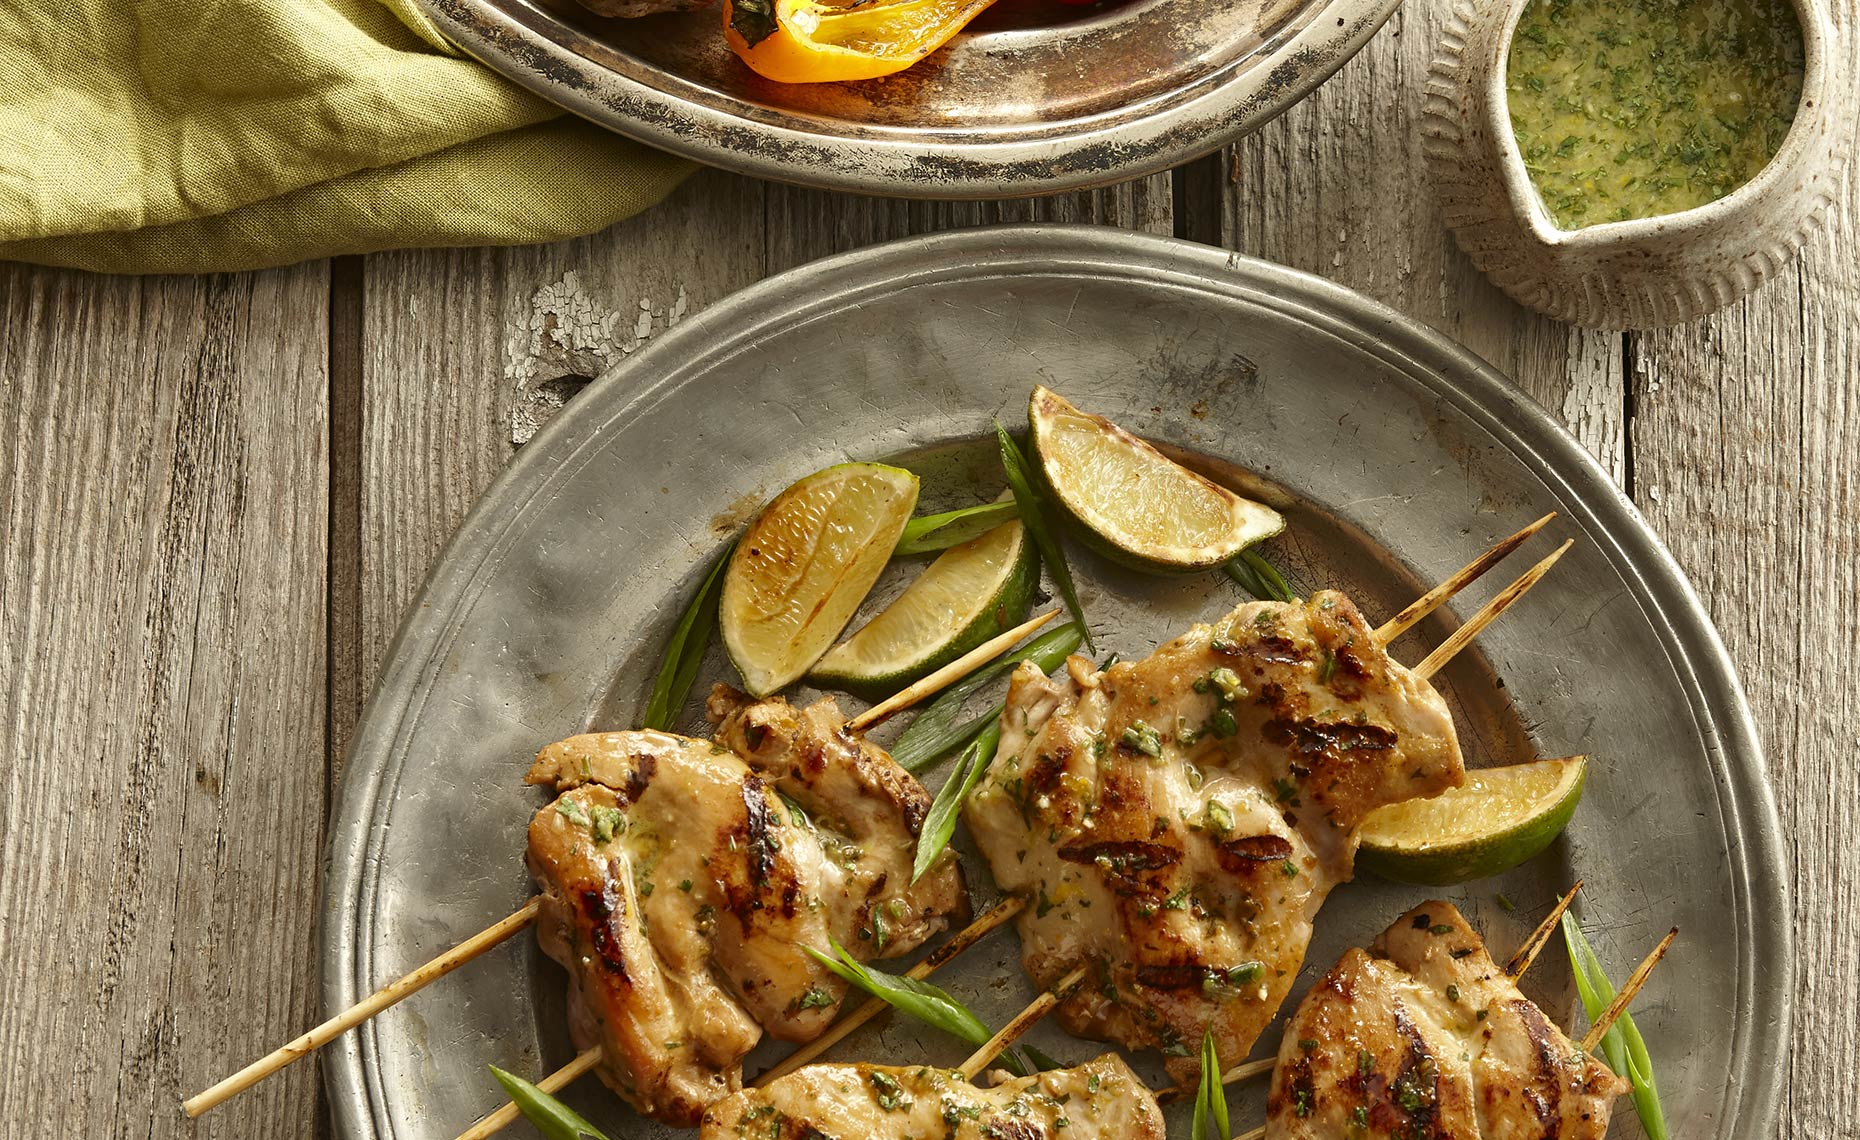 Food Photographer,  Chicken Photography, Poultry Photography | Pohuski Studios,  Citrus Chicken Skewers